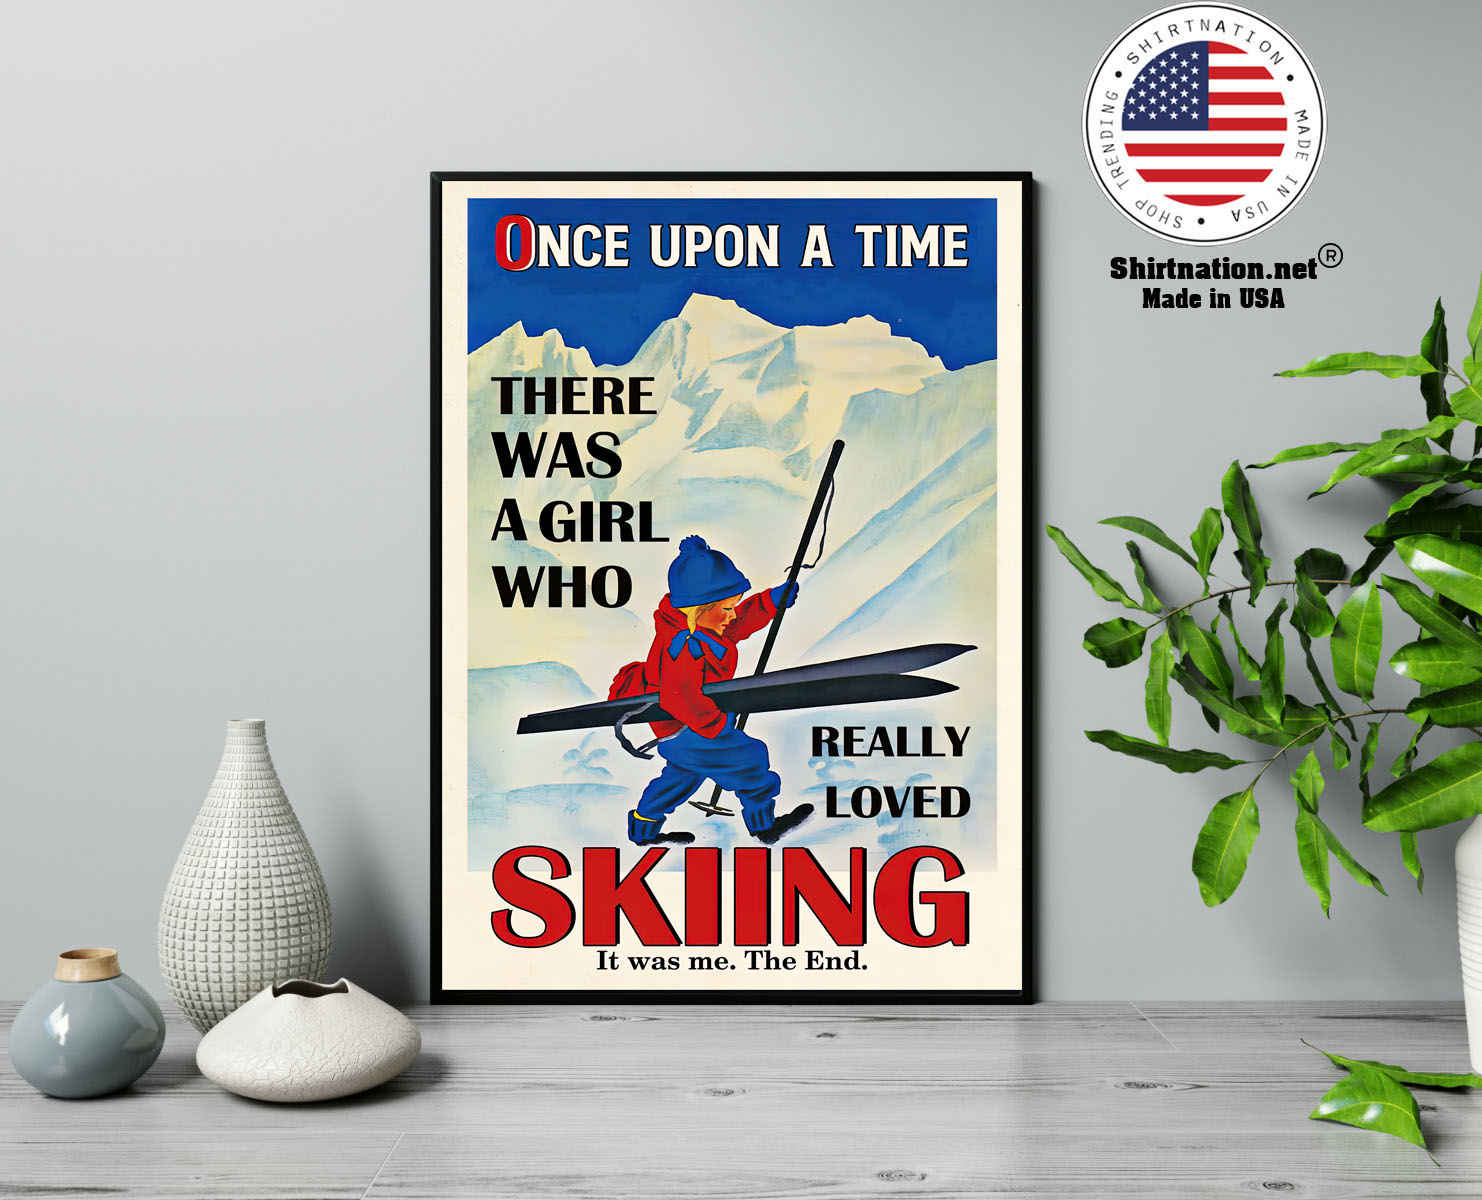 Once upon a time there was a girl who really loved skiing poster 13